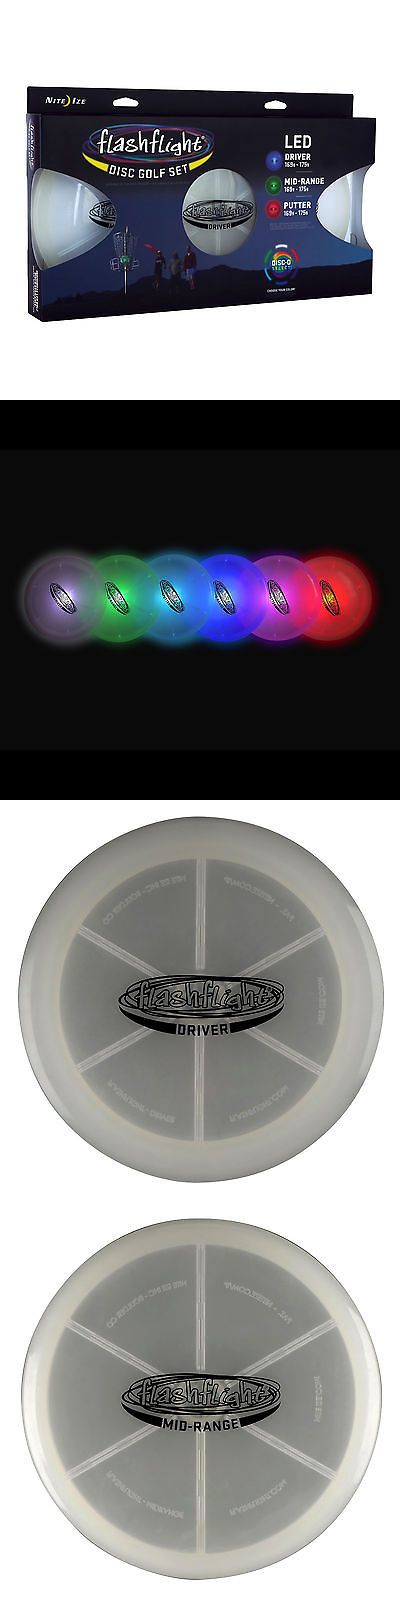 Disc Golf 20851: Nite Ize Flashflight Led Disc Golf Set Disco Putter Mid-Range And Driver Frisbee -> BUY IT NOW ONLY: $47.99 on eBay!